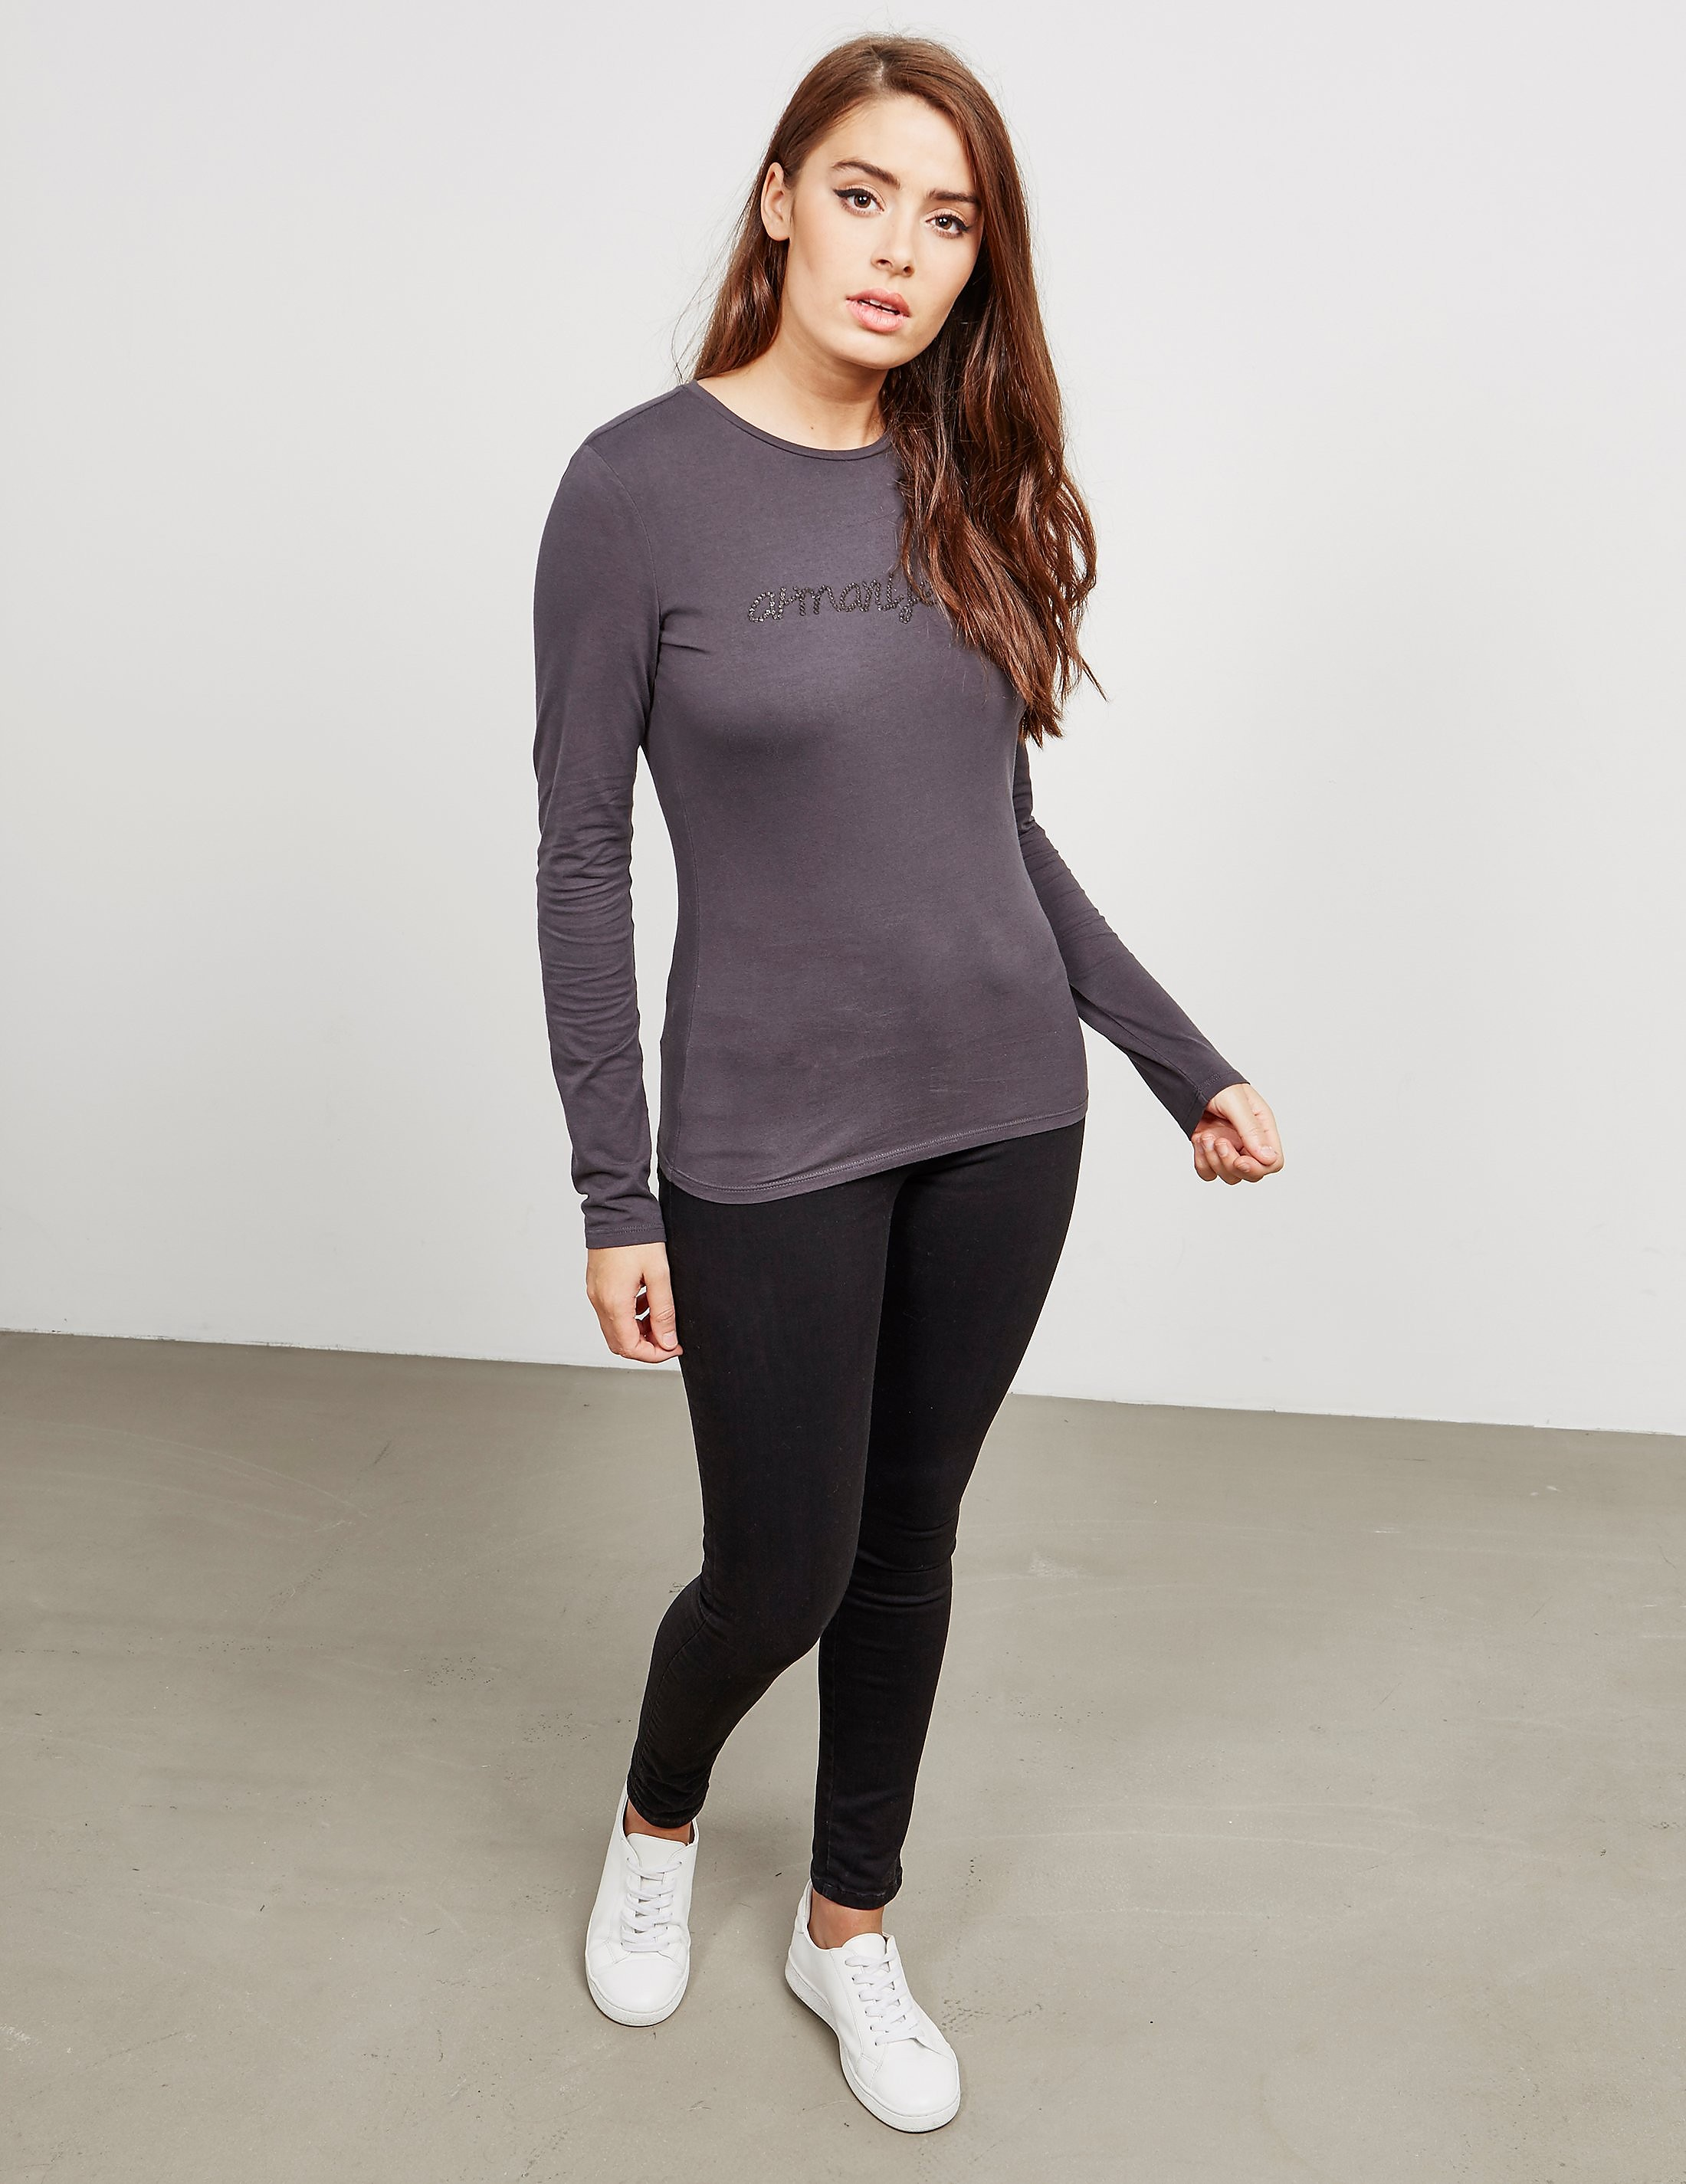 Armani Jeans Long Sleeve T-Shirt - Online Exclusive